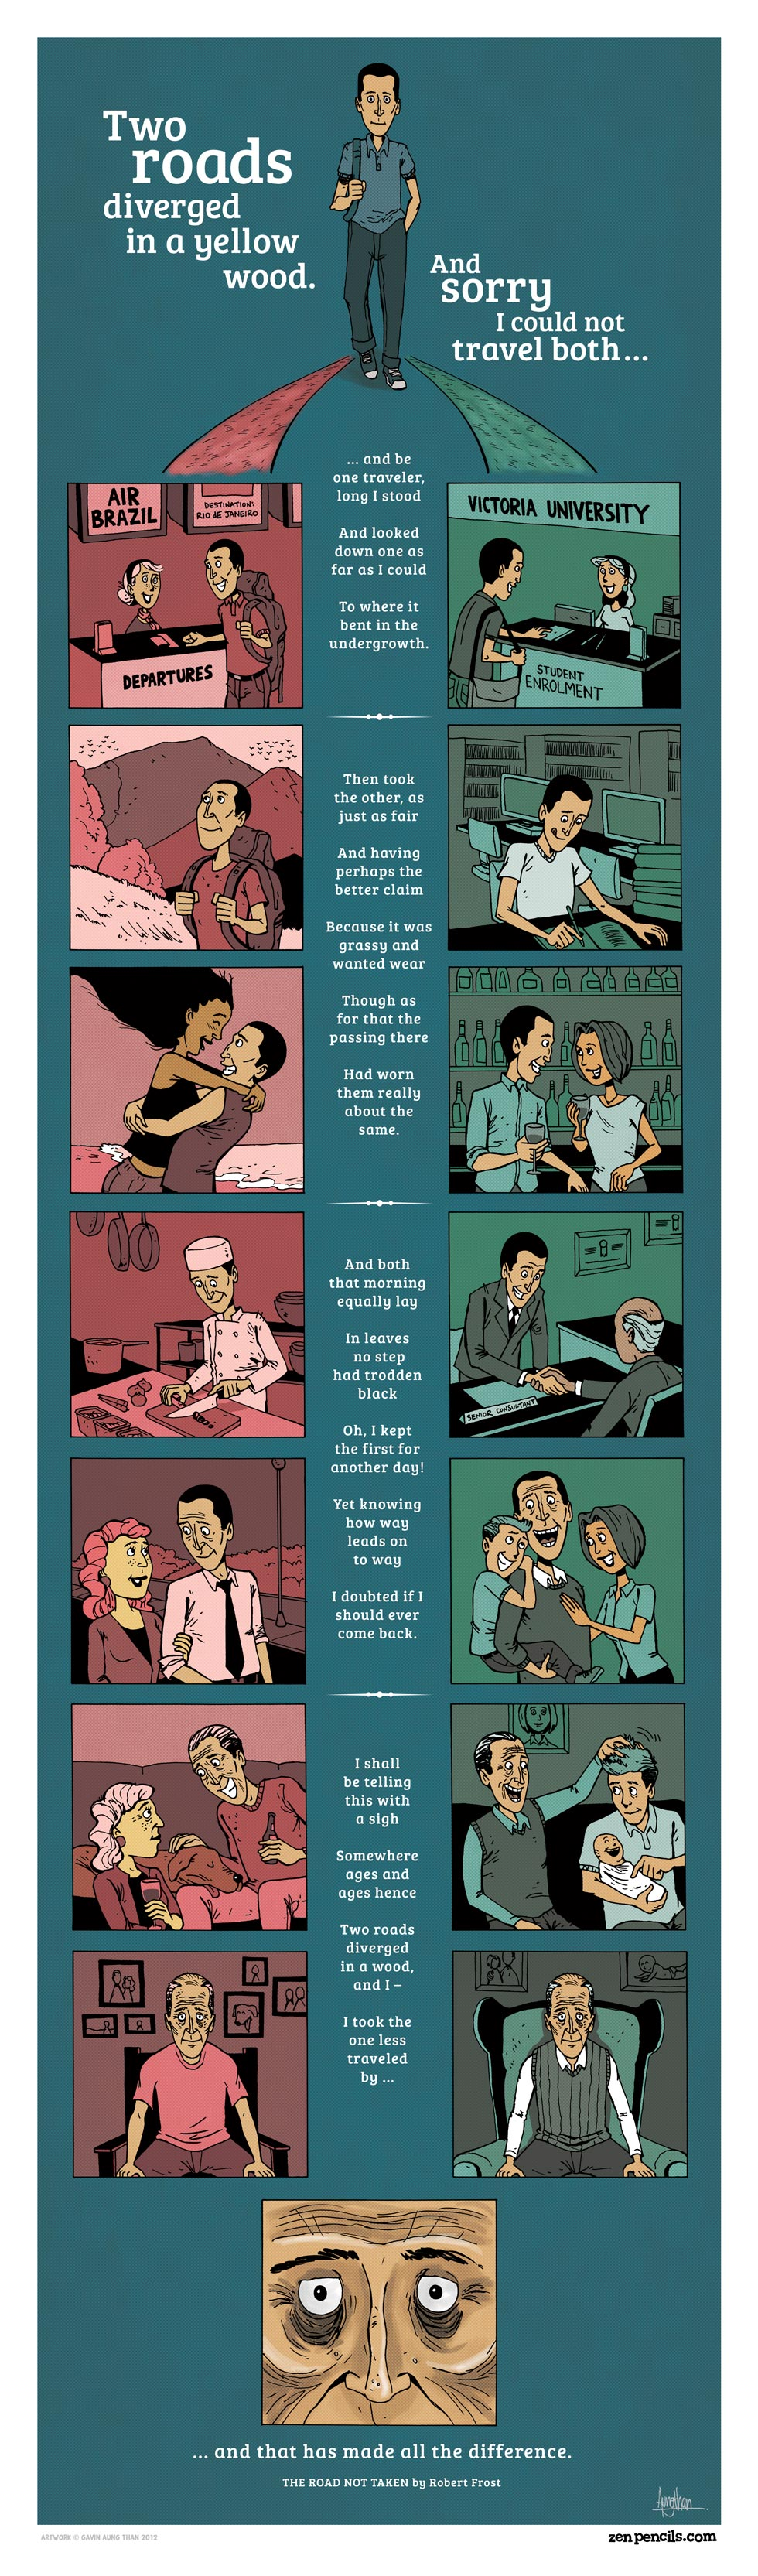 Two roads poem by Robert Frost, and made into a comic by ZenPencils.com